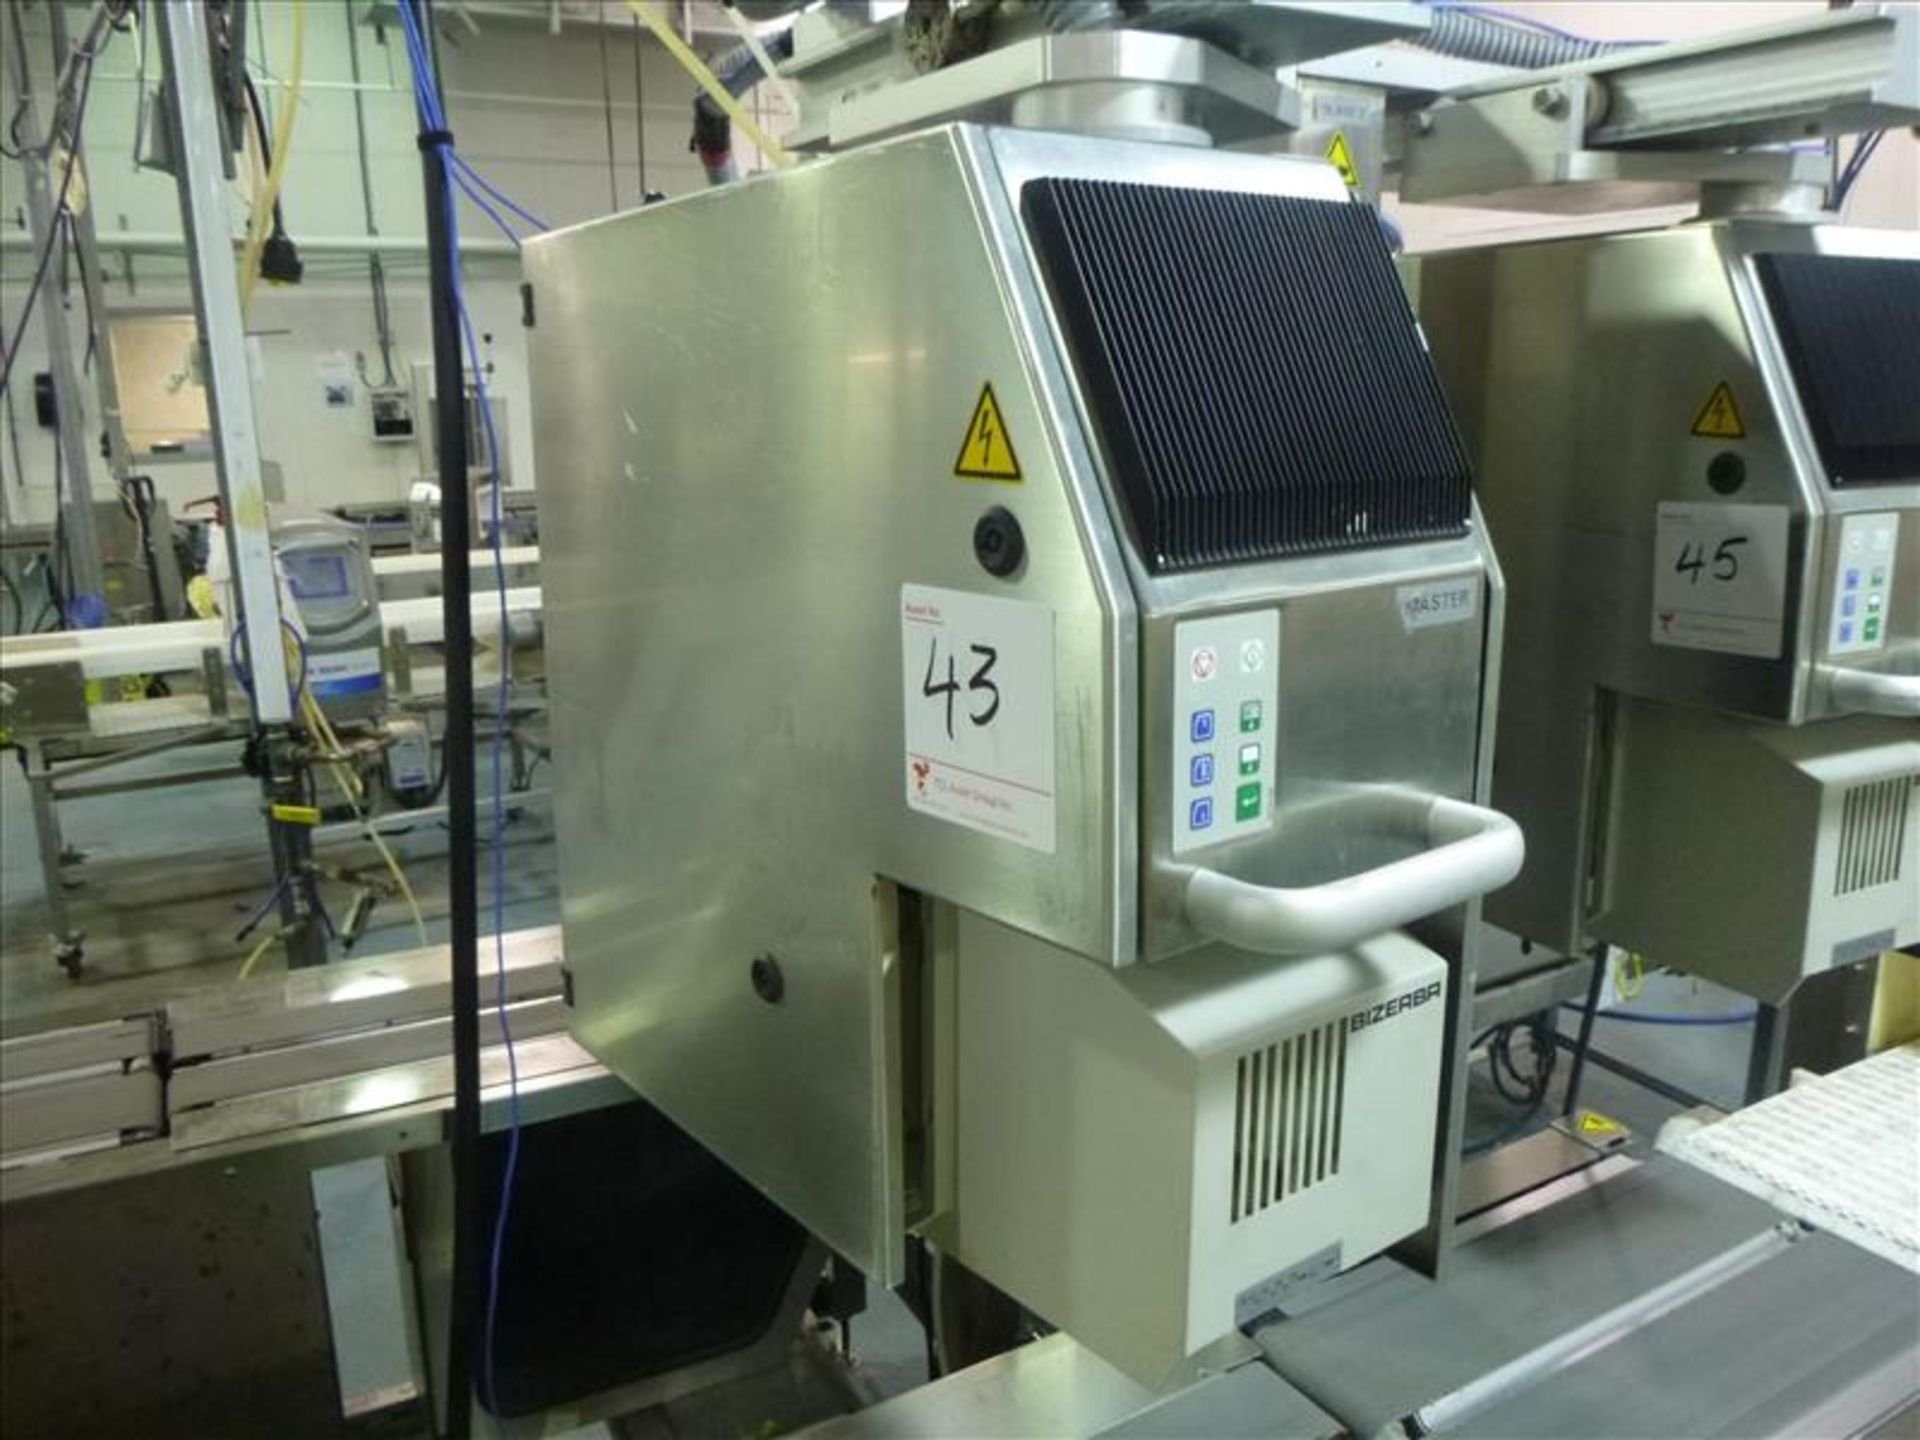 Lot 43 - Bizerba in-line check-weigher system (MASTER) w/ Bizerba GS label printer and Bizerba AB controller,